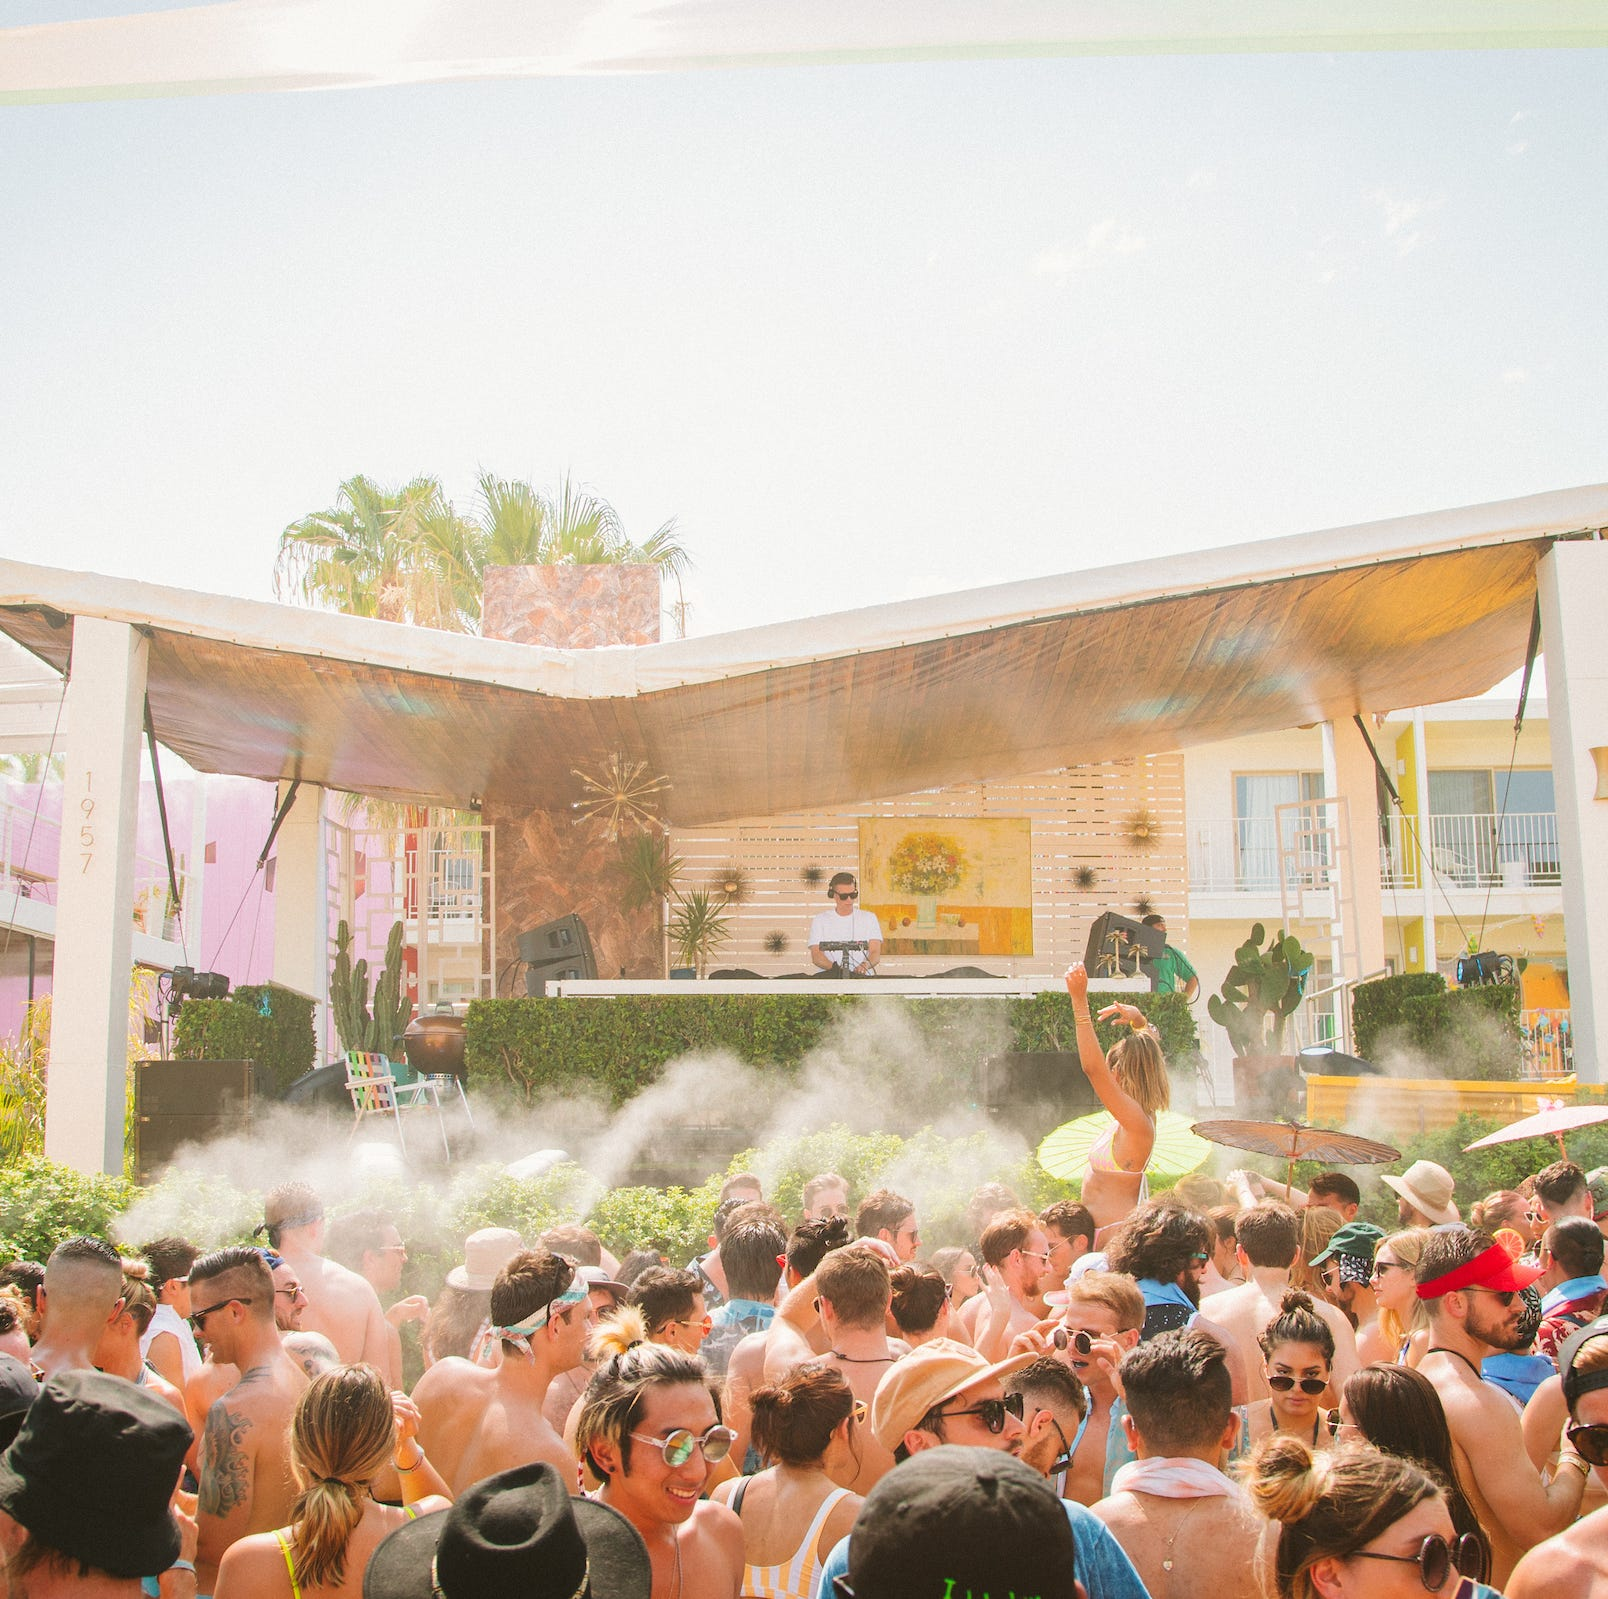 Splash House 2019 dates announced. Here's when you can get tickets